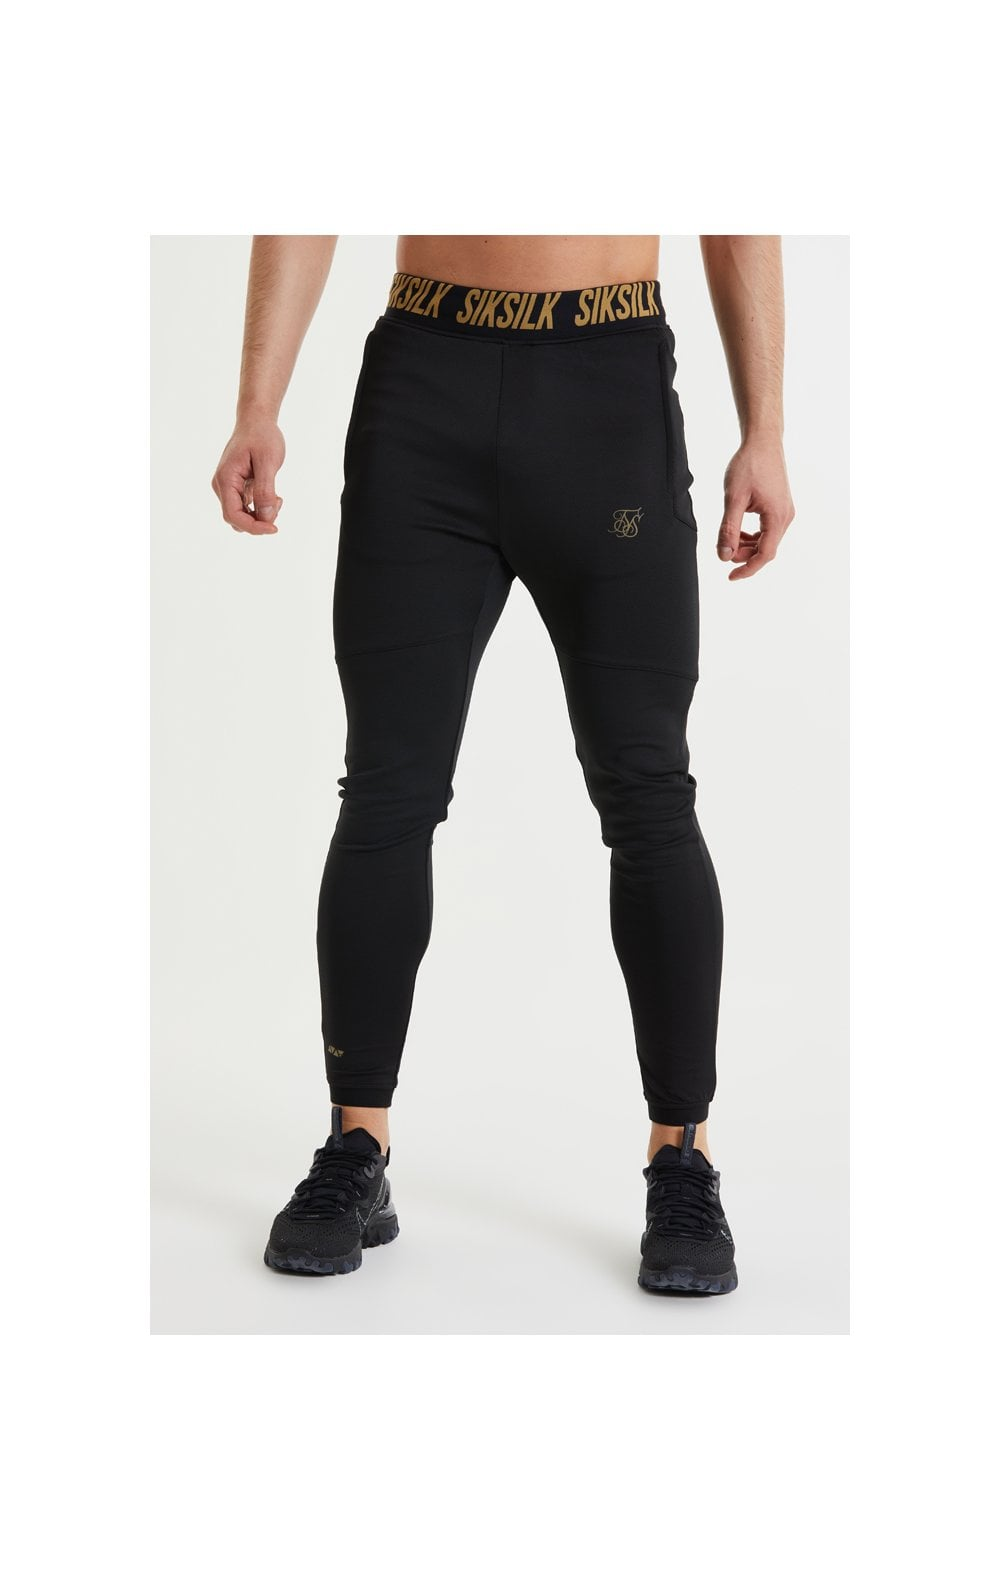 Load image into Gallery viewer, SikSilk Performance Agility Pants – Black & Gold